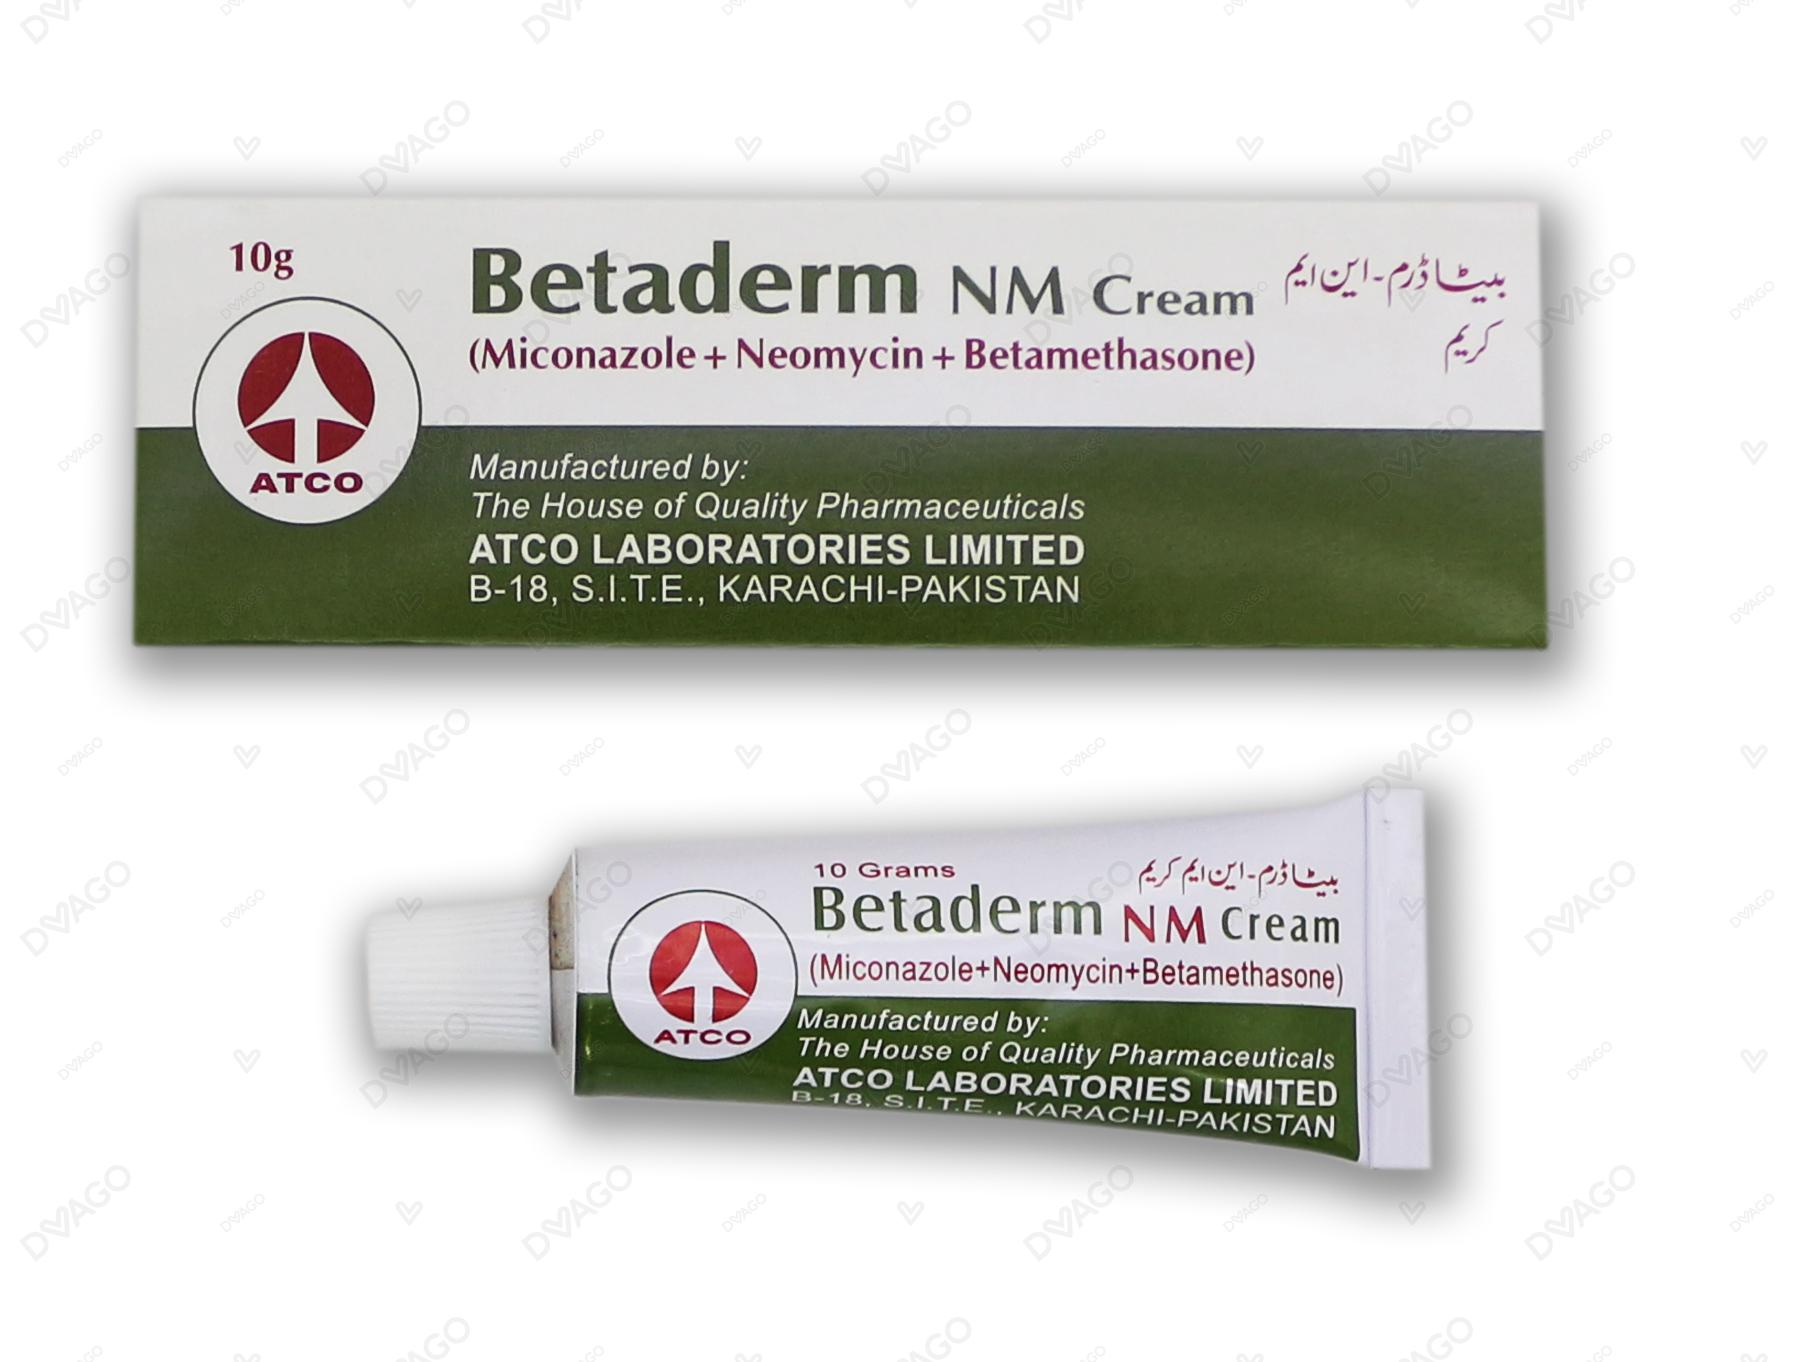 Betaderm Nm Cream 10g